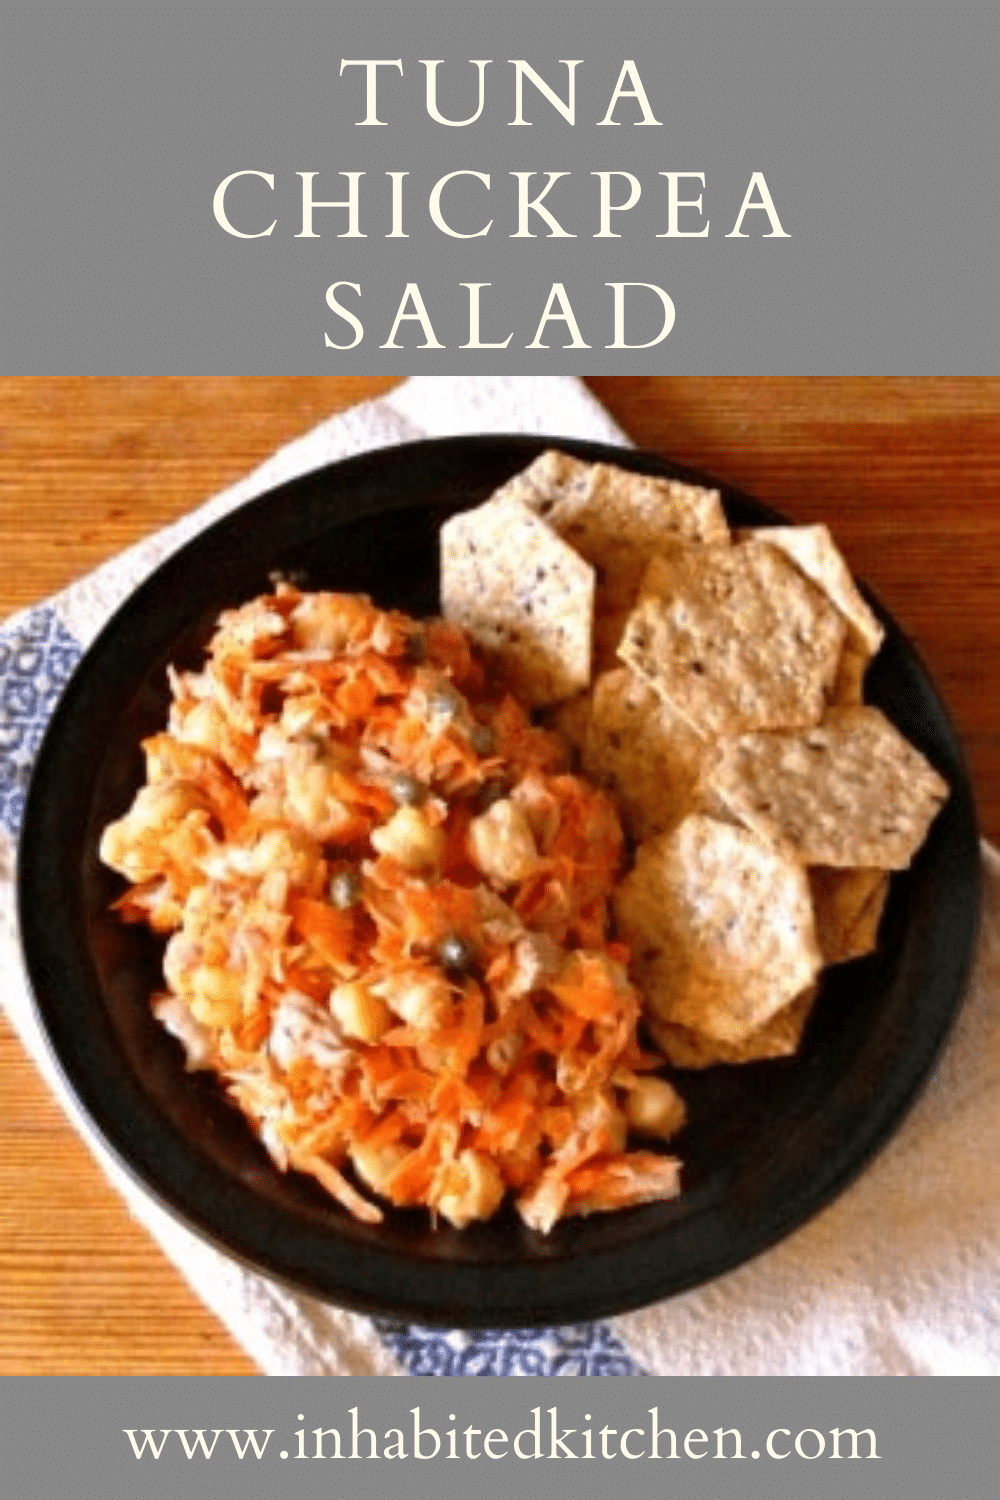 Tuna Chickpea Salad with Carrots, on a plate with crackers